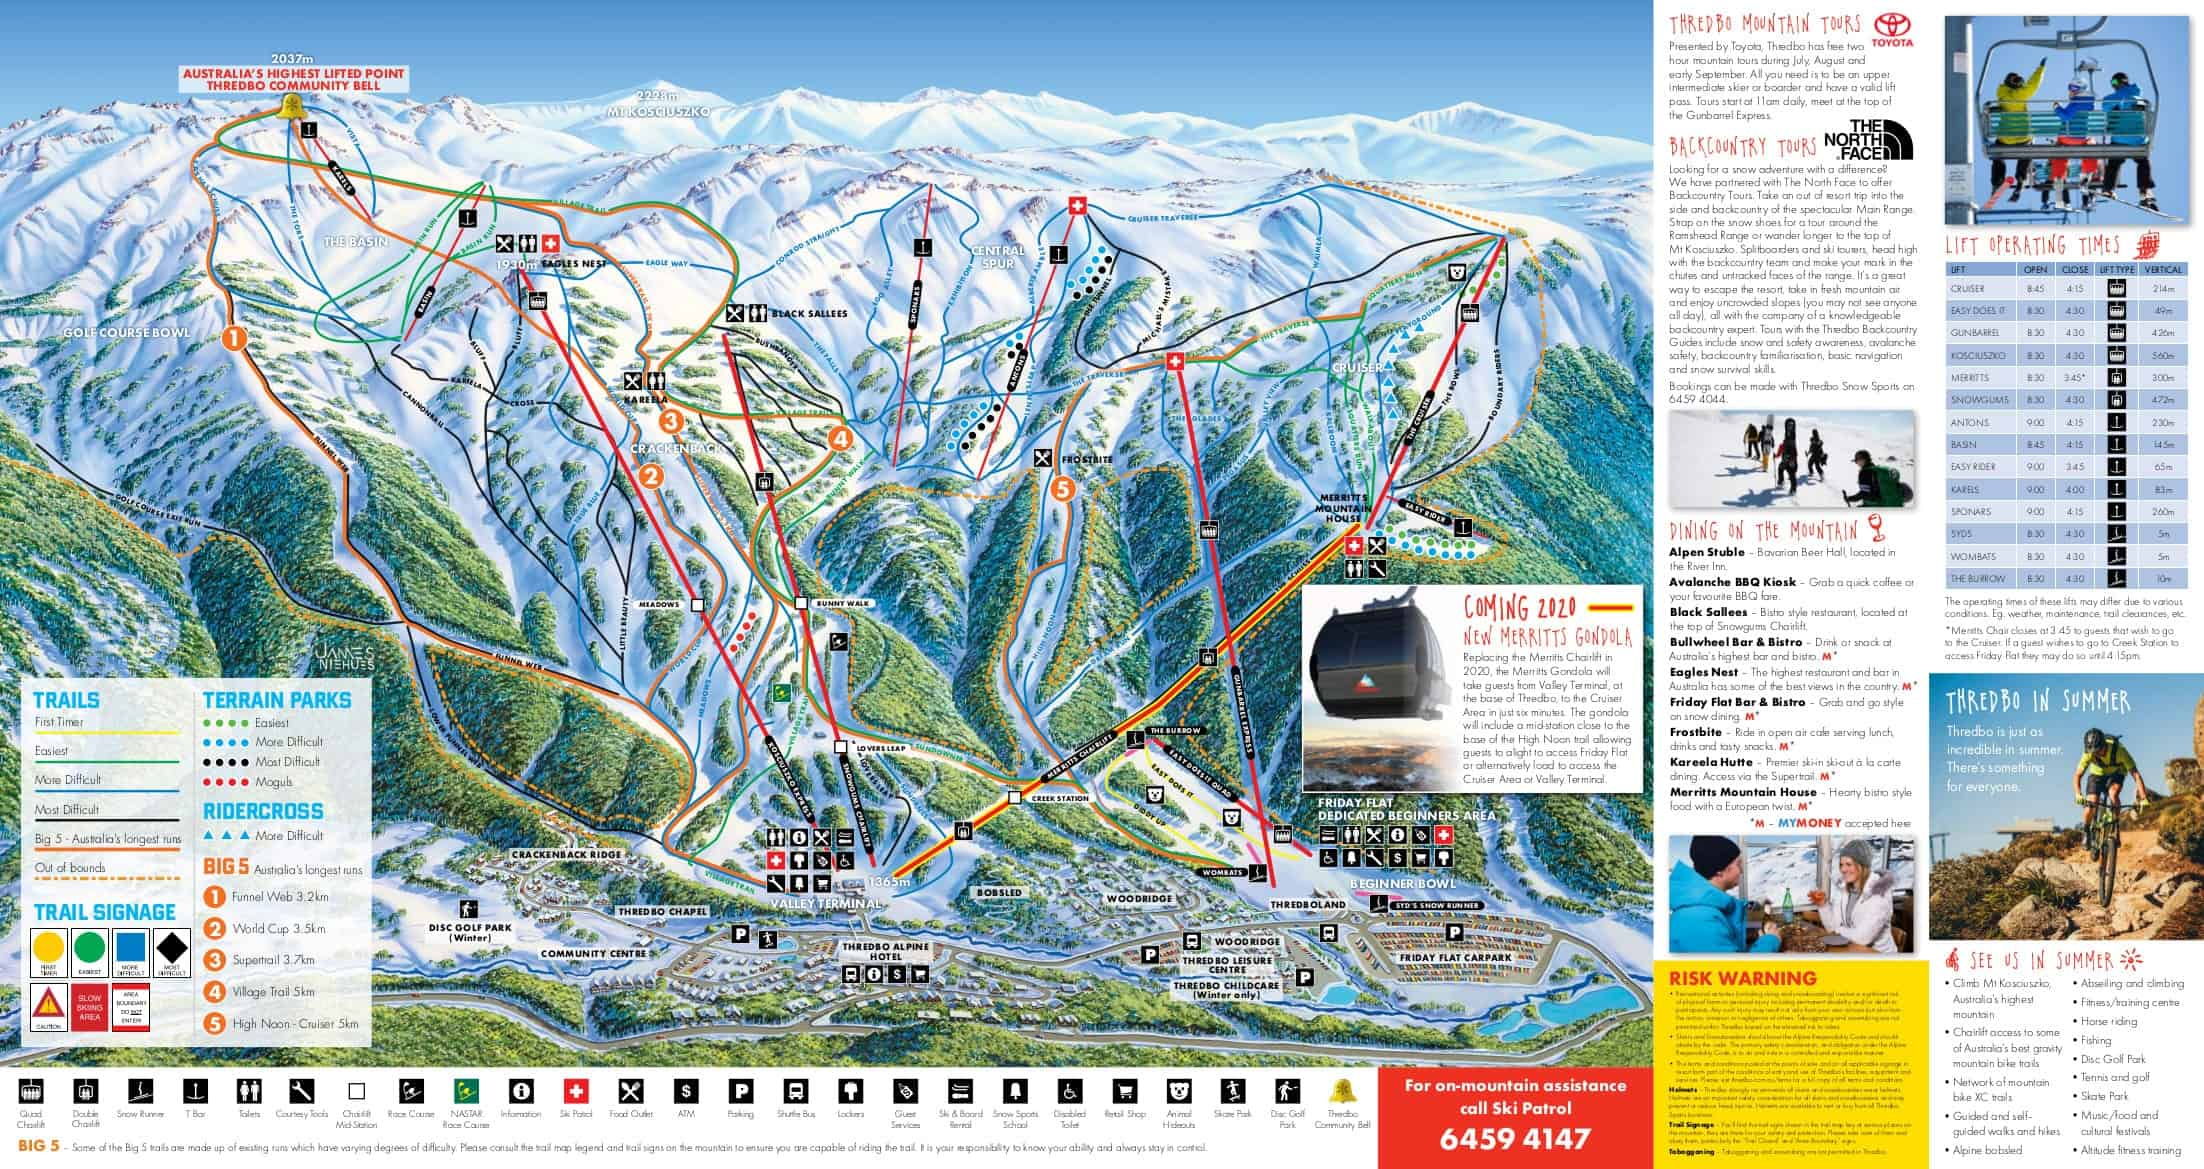 Thredbo Ski Trail Map 2019